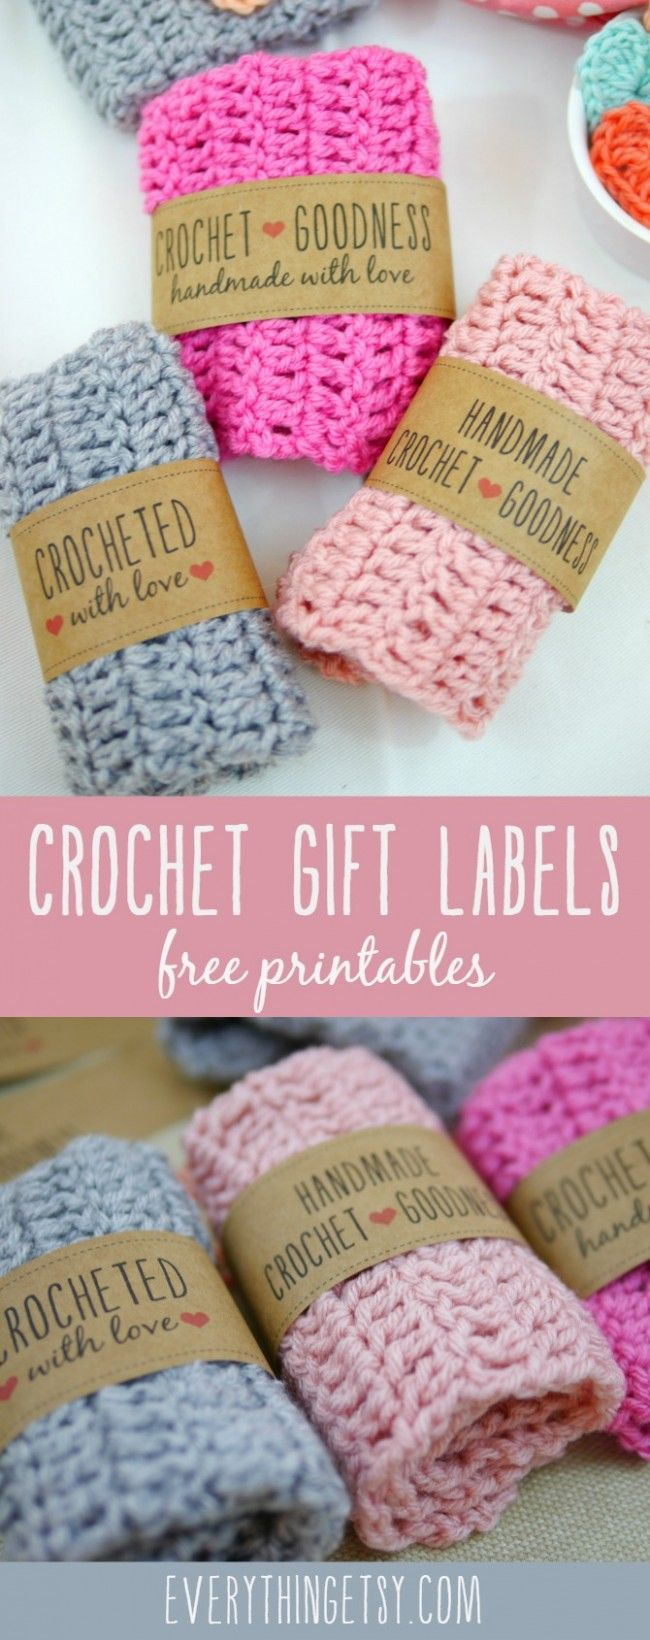 Free Printable Crochet Gift Labels - EverythingEtsy.com | Printables ...